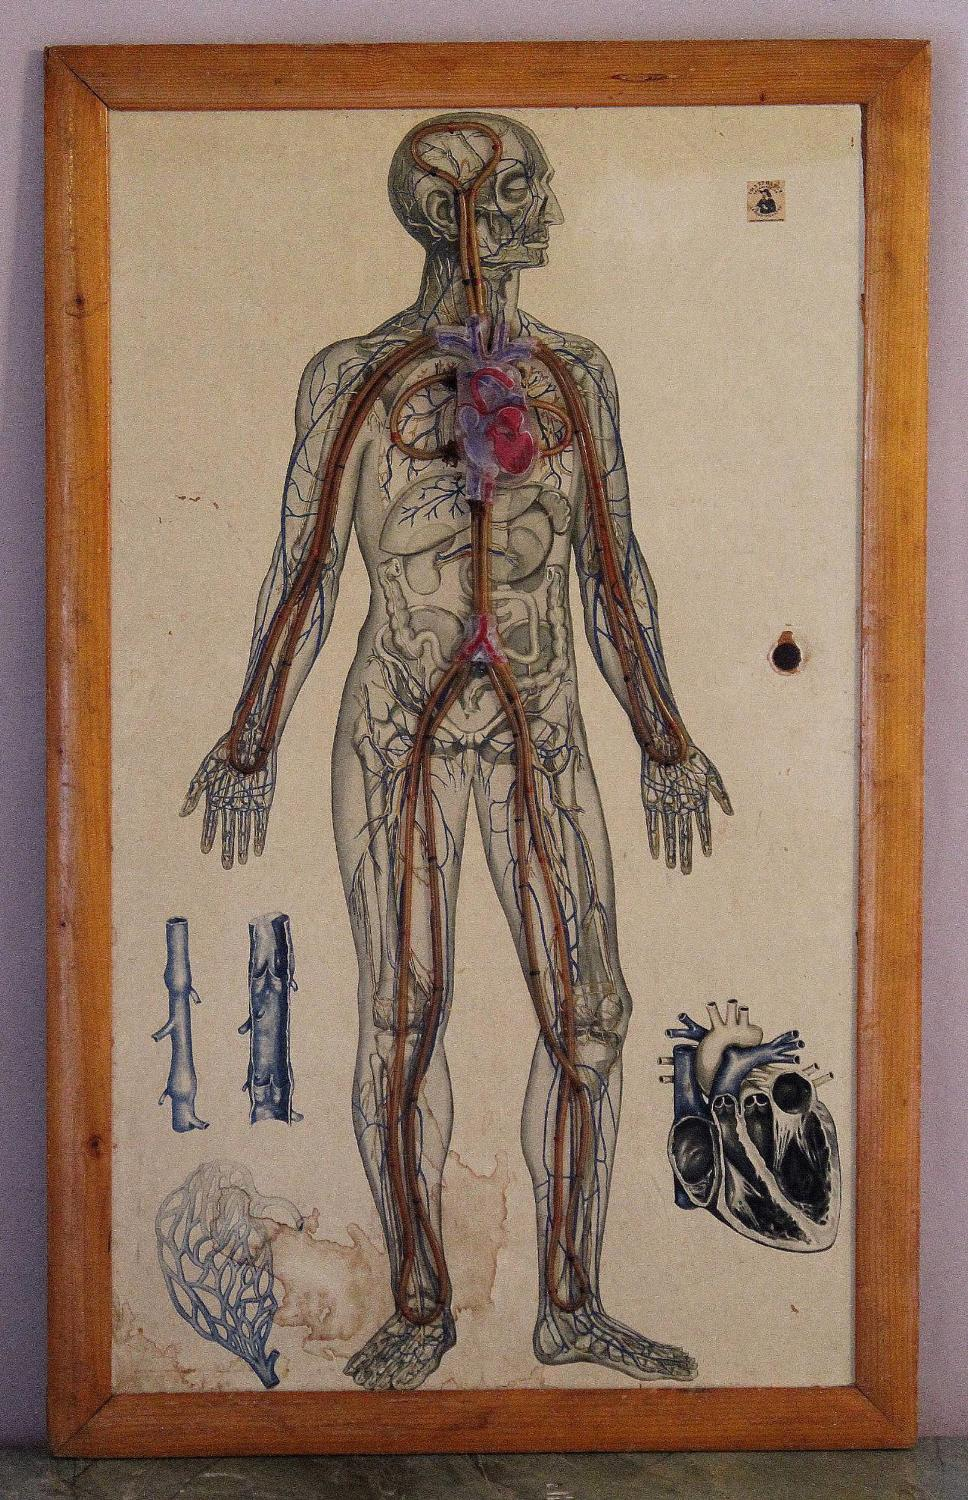 Vintage Educational Anatomical Poster